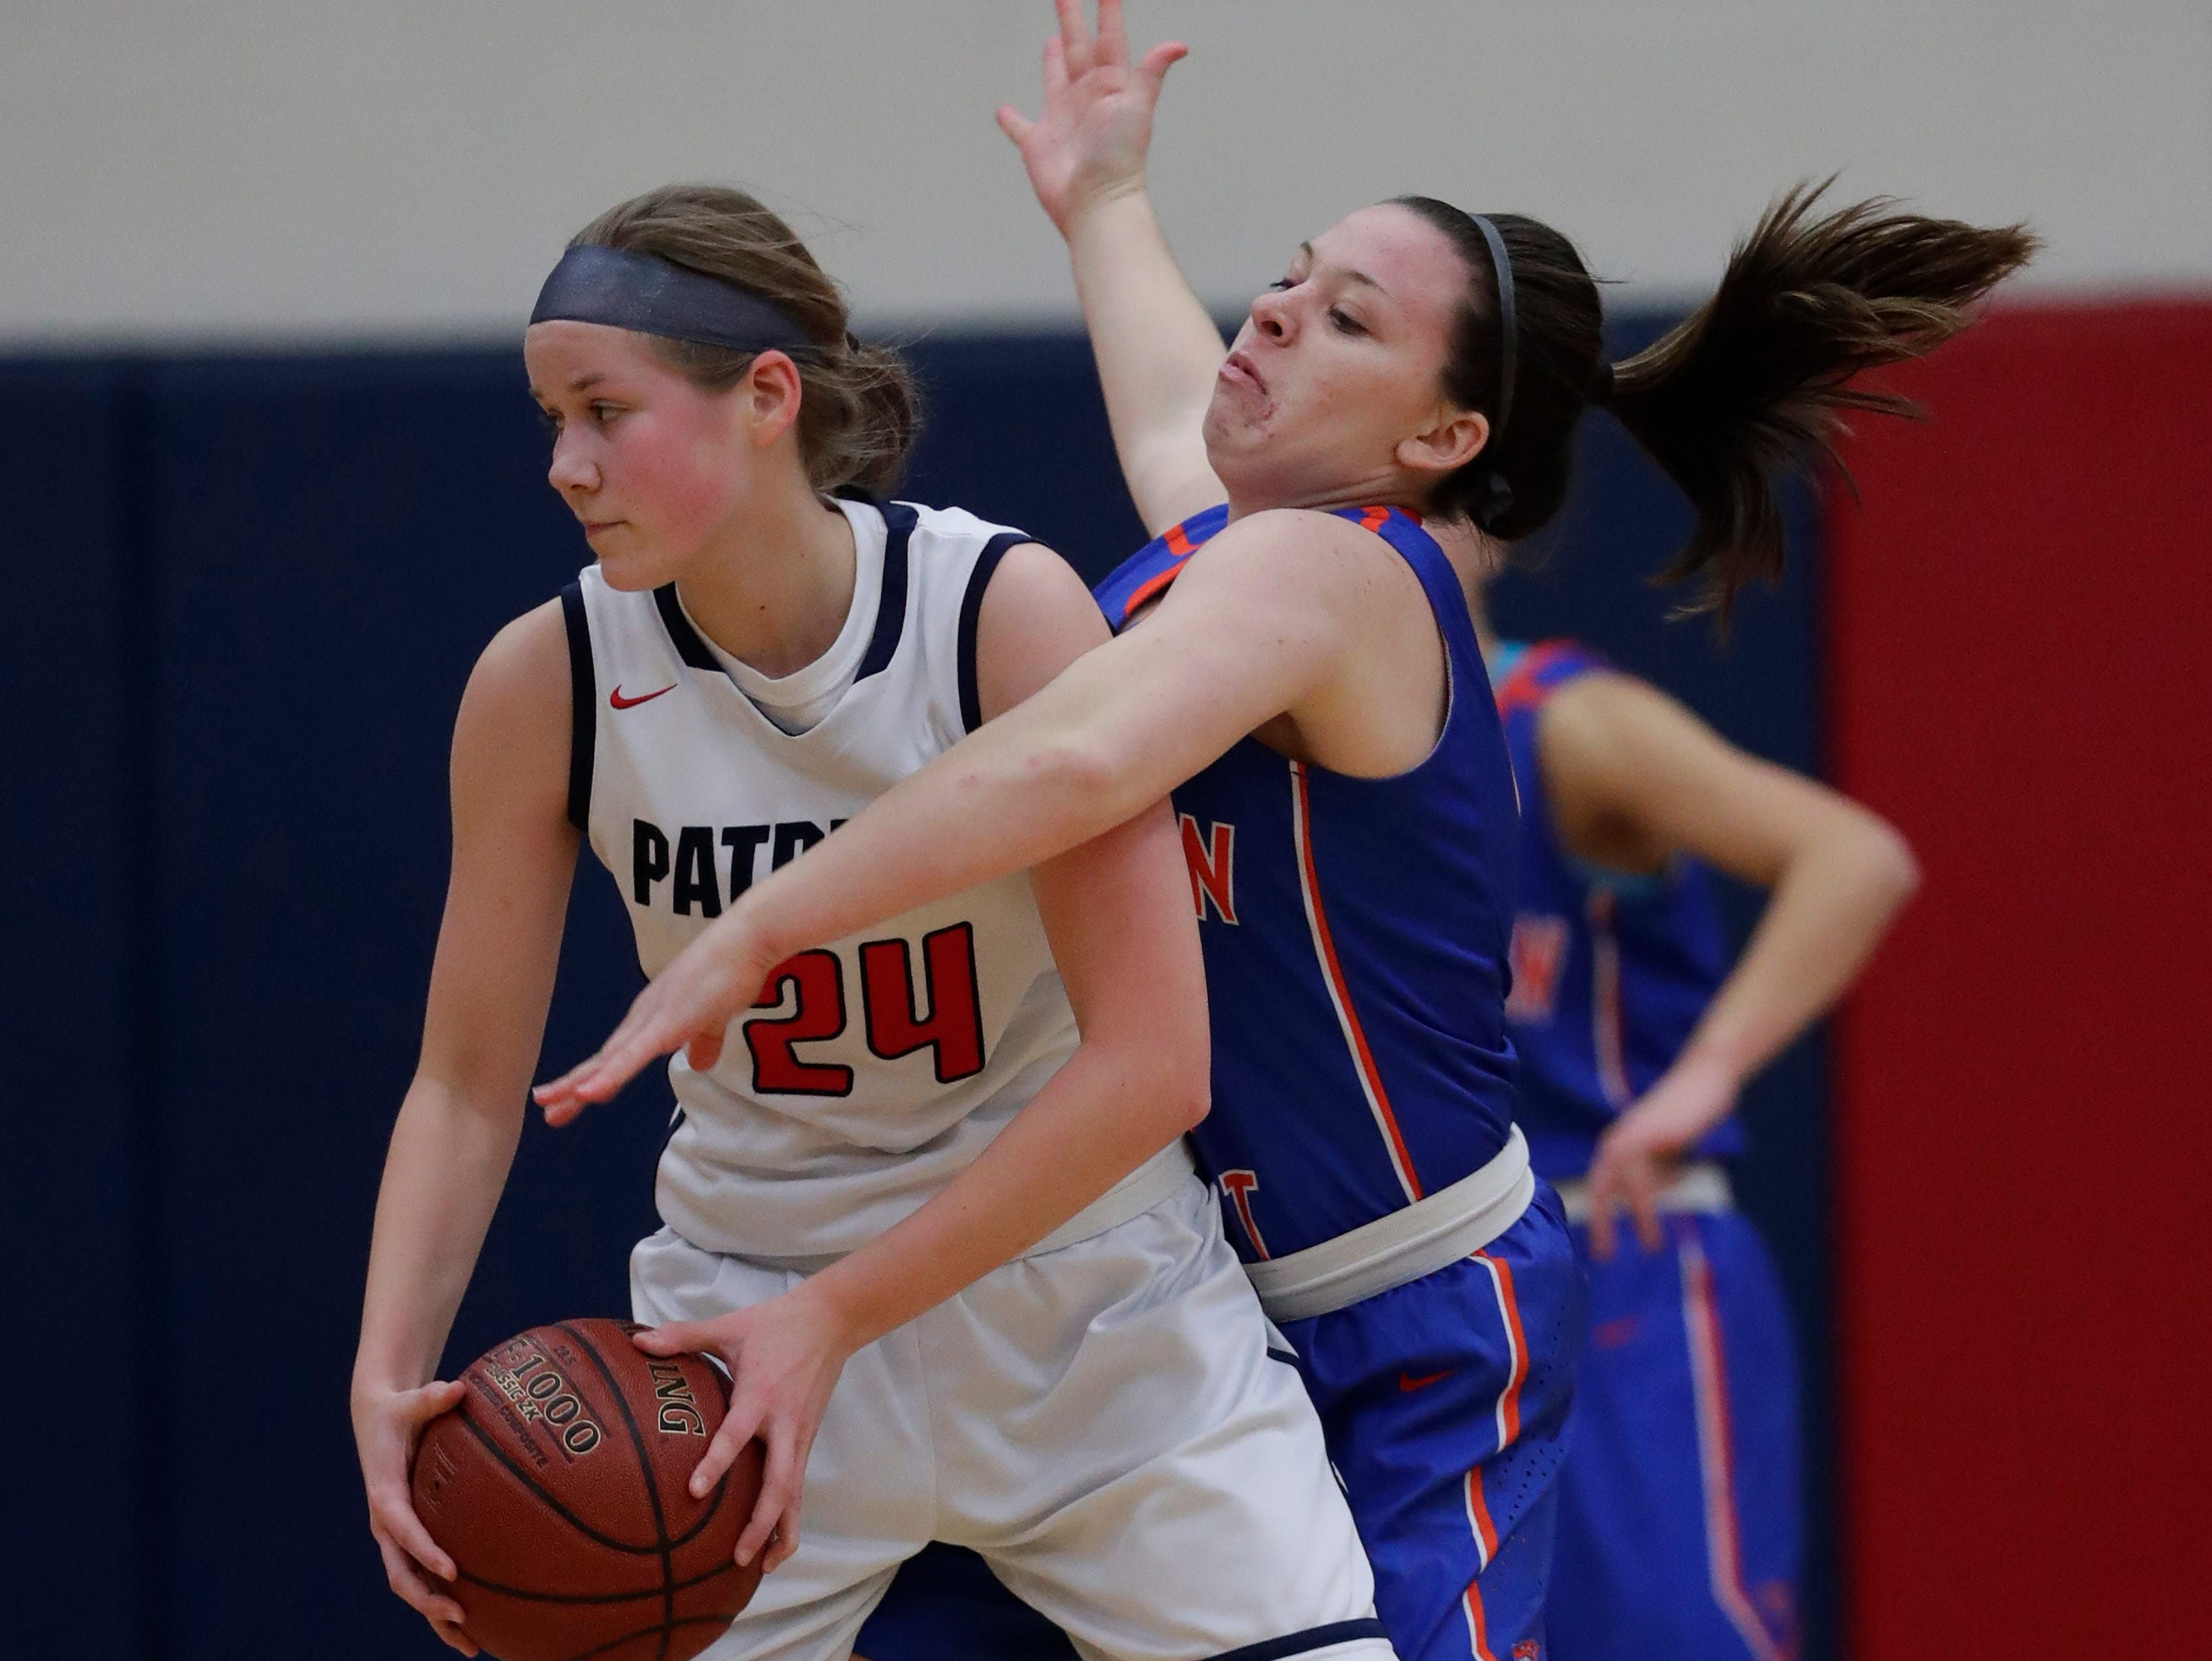 Appleton East High School's Delaney Clark (24) looks to pass the ball against Appleton West High School's Haley Peterson (13) during their girls basketball game Friday, January 11, 2019, at Appleton East High School in Appleton, Wis. 